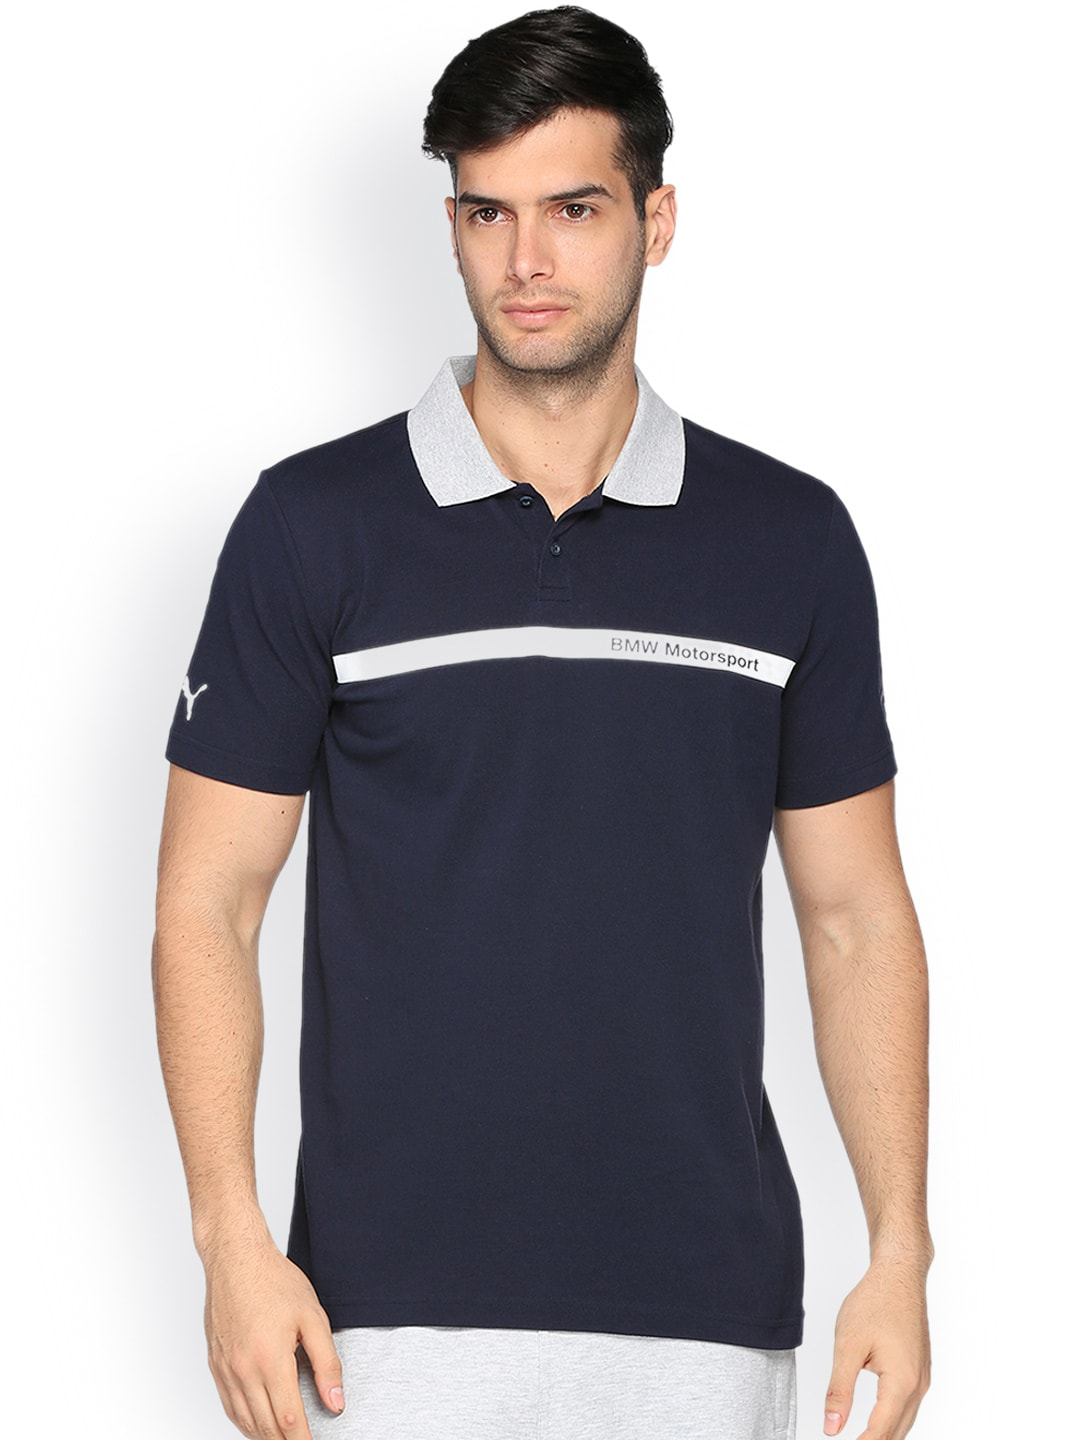 Puma T shirts - Buy Puma T Shirts For Men   Women Online in India a7c421bf2